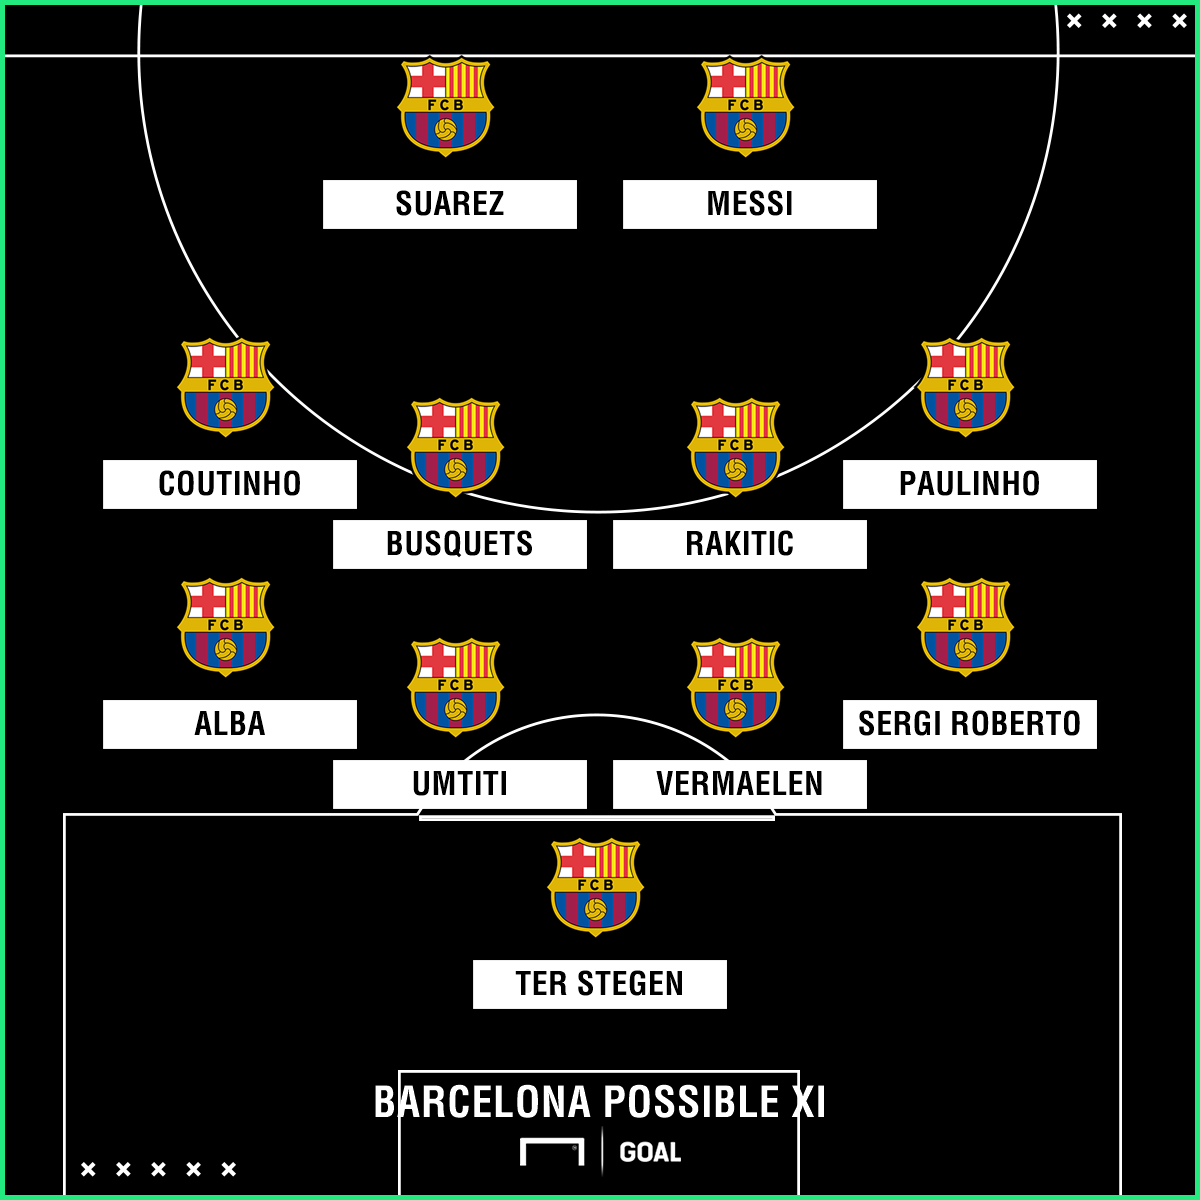 Barcelona possible Malaga